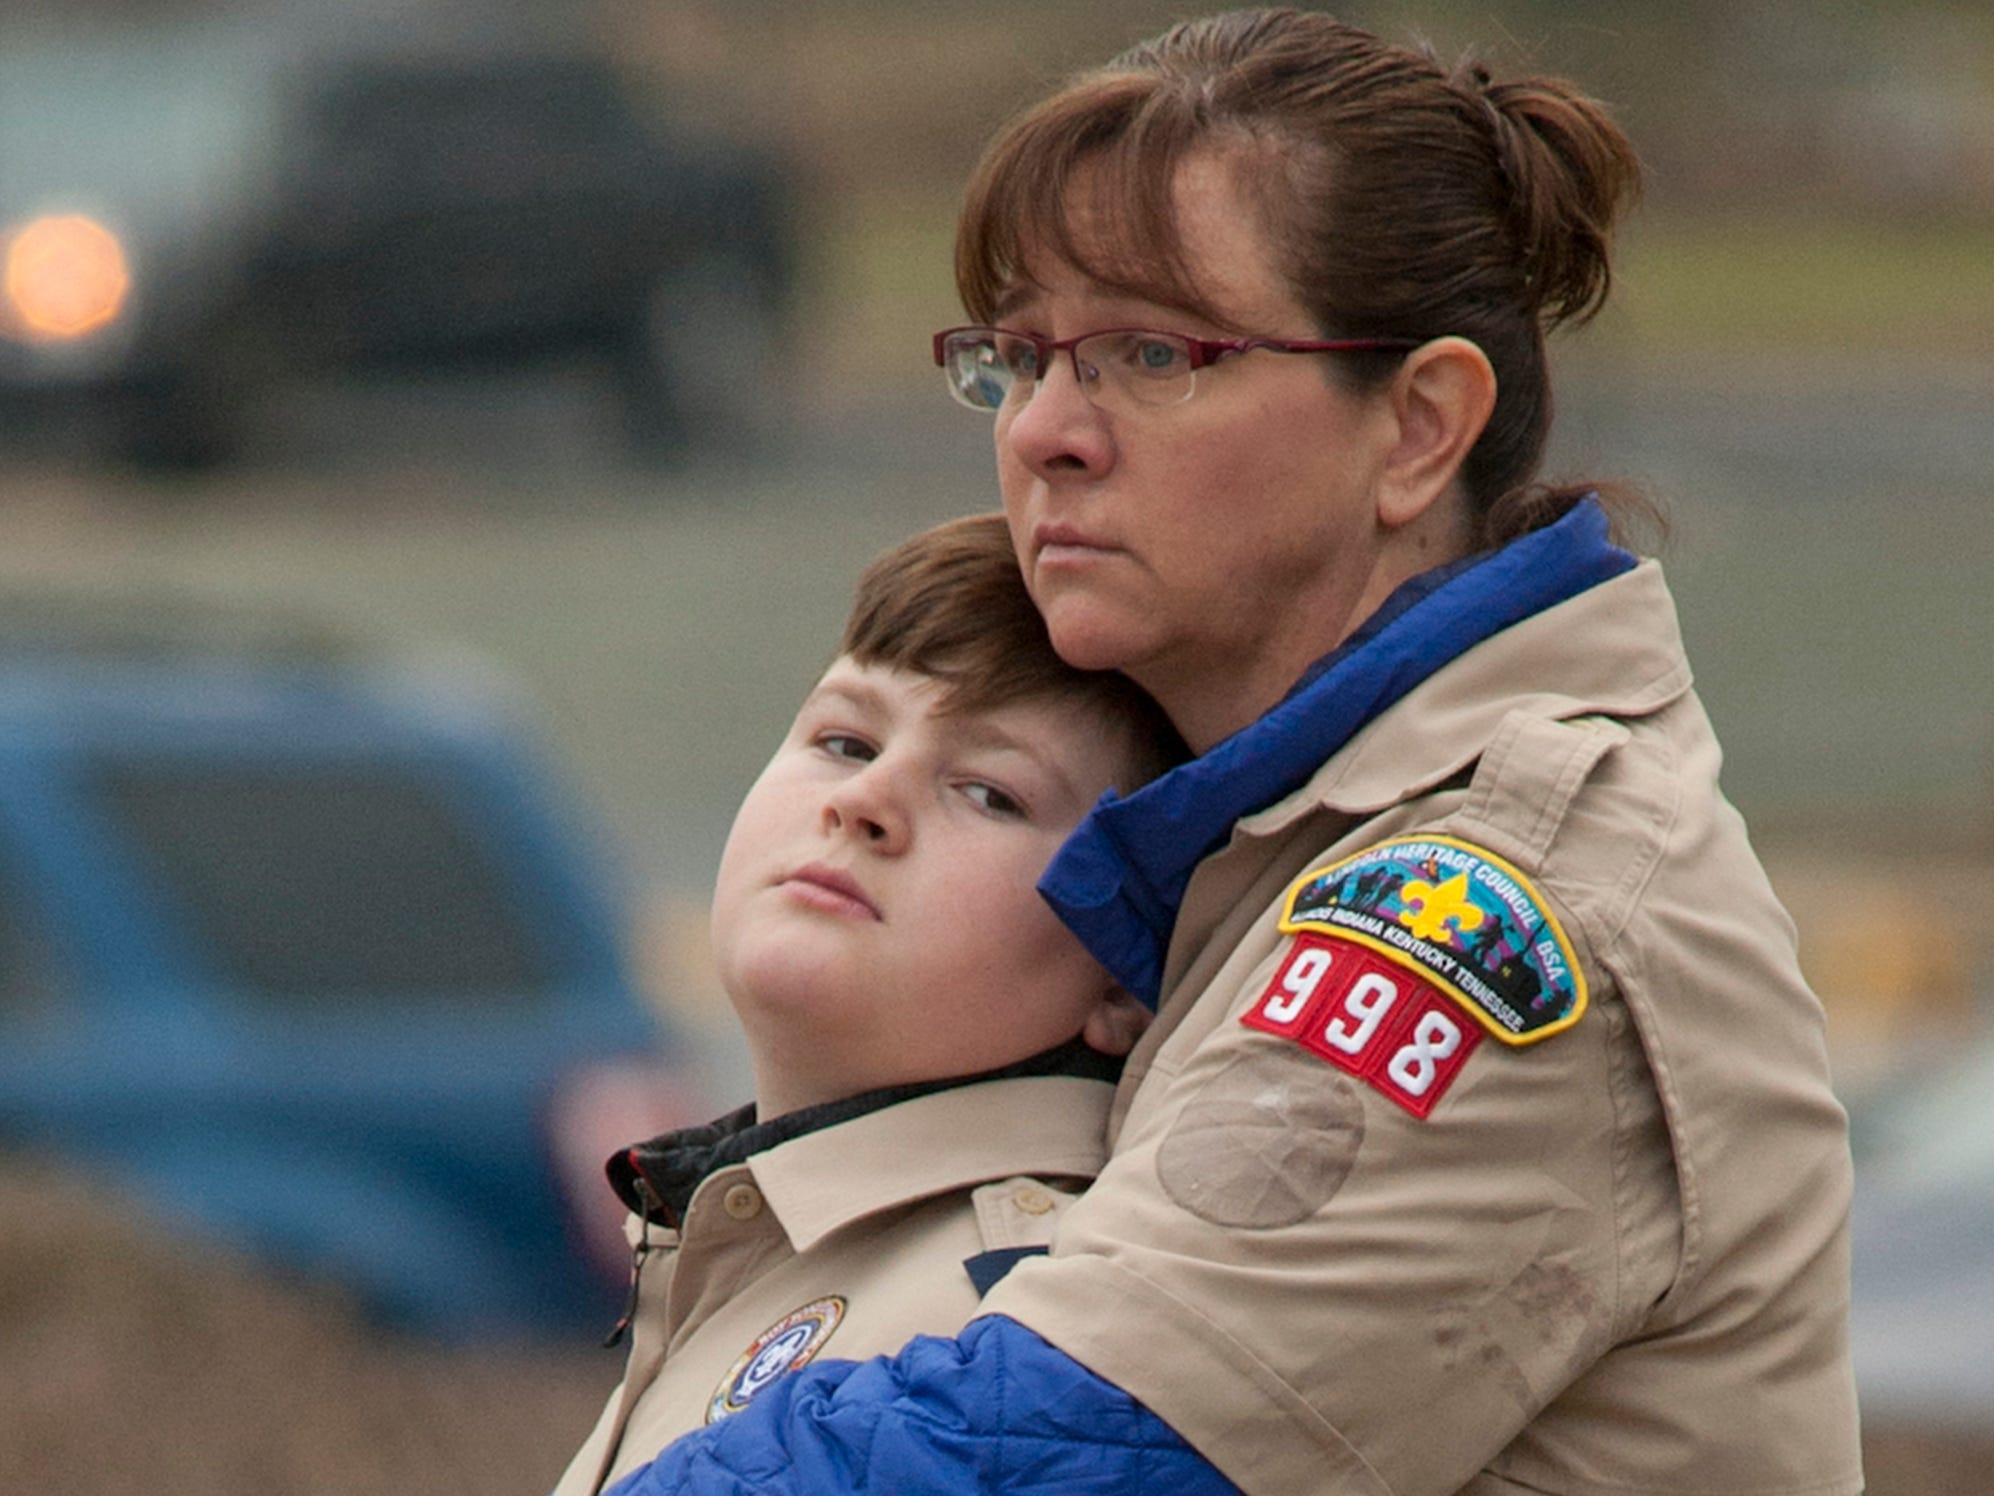 "Cub Scout Josh Wagner, 10, is clutched by his mother, Martha, as they watch the procession of LMPD Detective Deidre Mengedoht enter the Funeral Home on Bardstown Road. Josh is in the same scout pack (Pack 998) as Detective Mengedoht's son, Preston, age 9. ""We hope our presence helps Preston,"" she said. 29 December 2018"